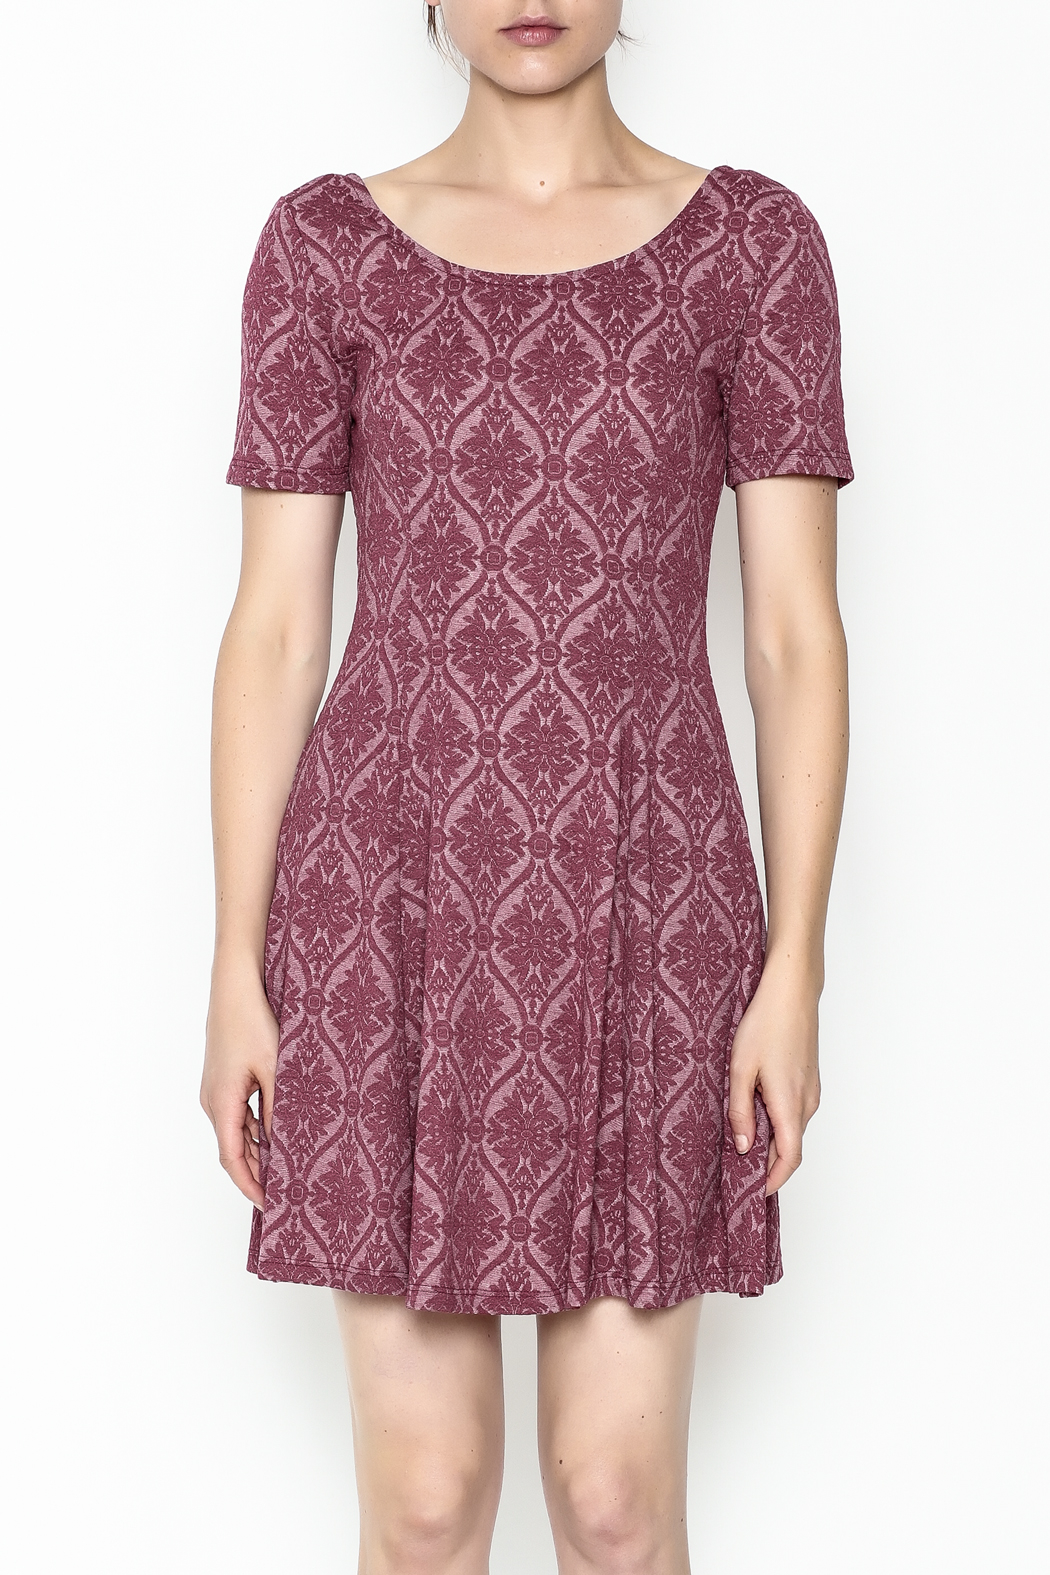 Everly Patterned Deep Pink Dress - Front Full Image